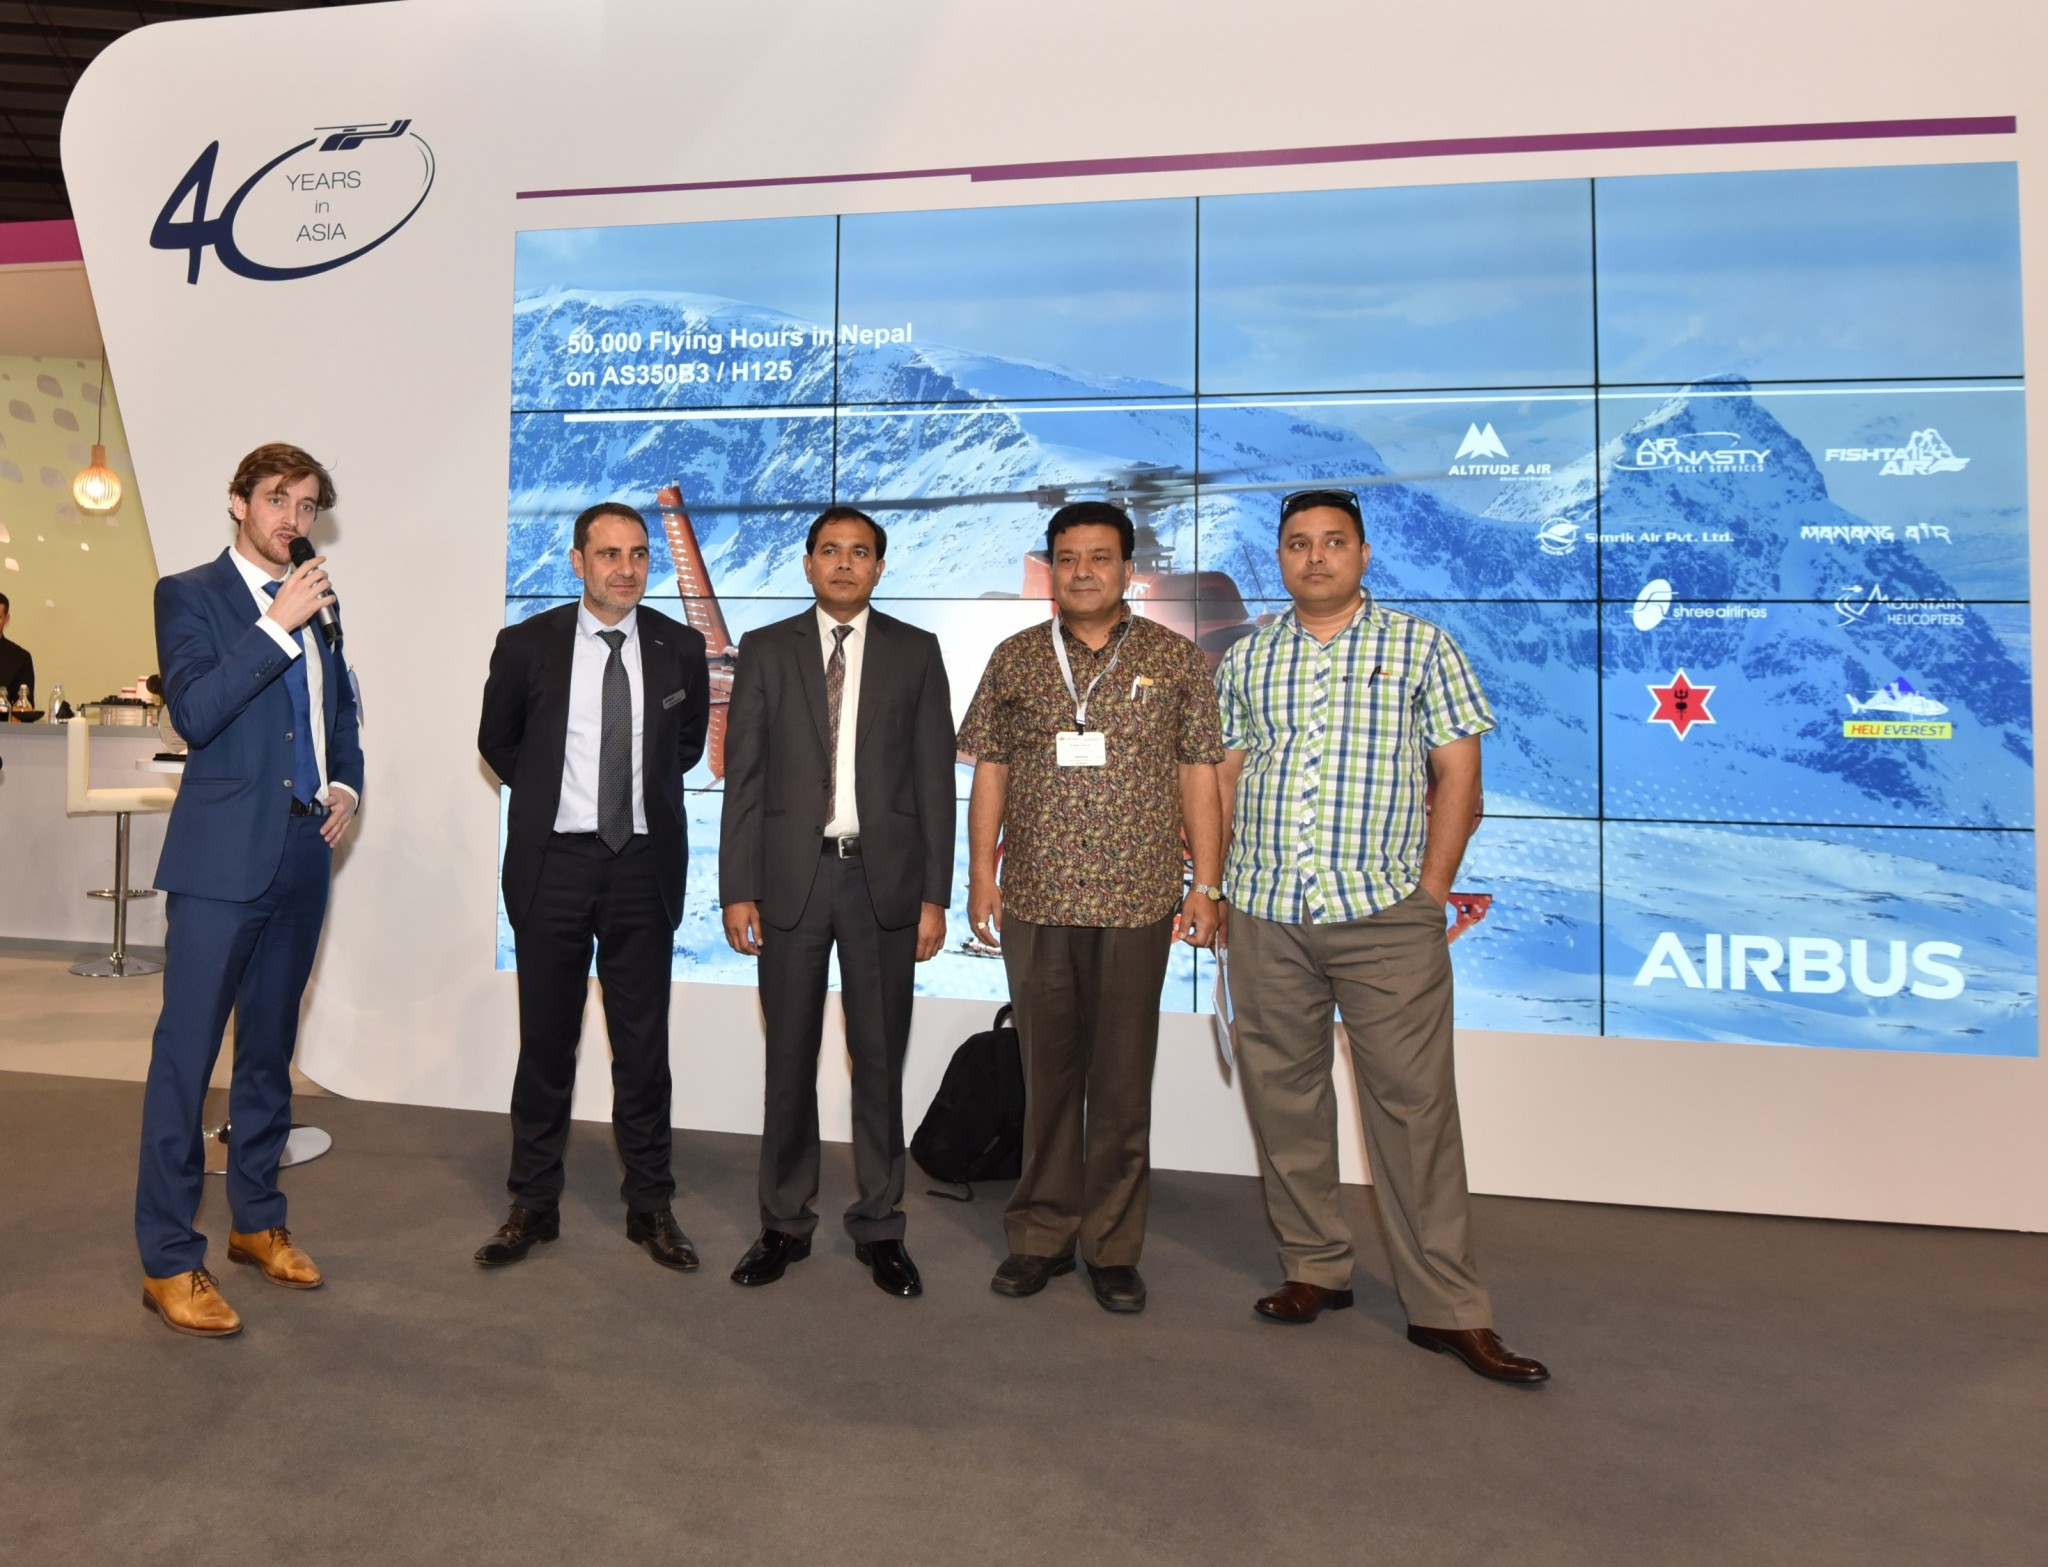 Airbus and Nepalese operators mark 50,000 flight hours of the H125 in the Himalayan Kingdom